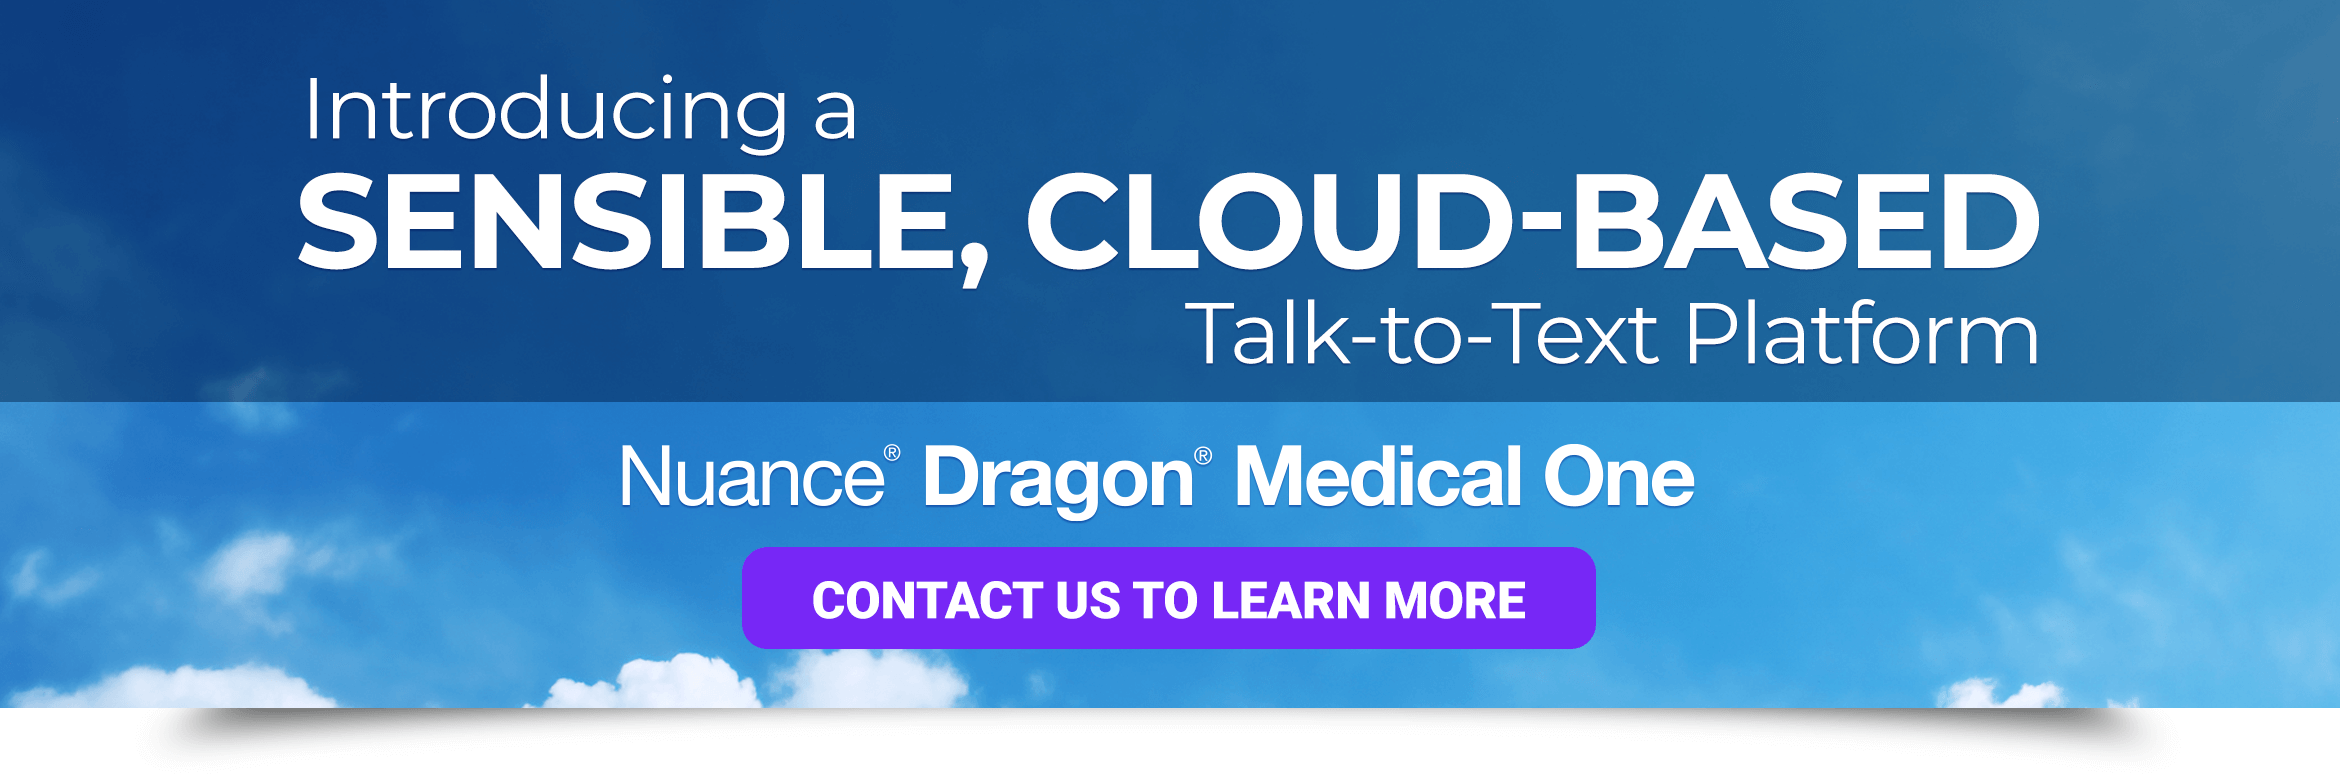 Introducing a sensible, cloud-based talk-to-text platform - Dragon Medical One